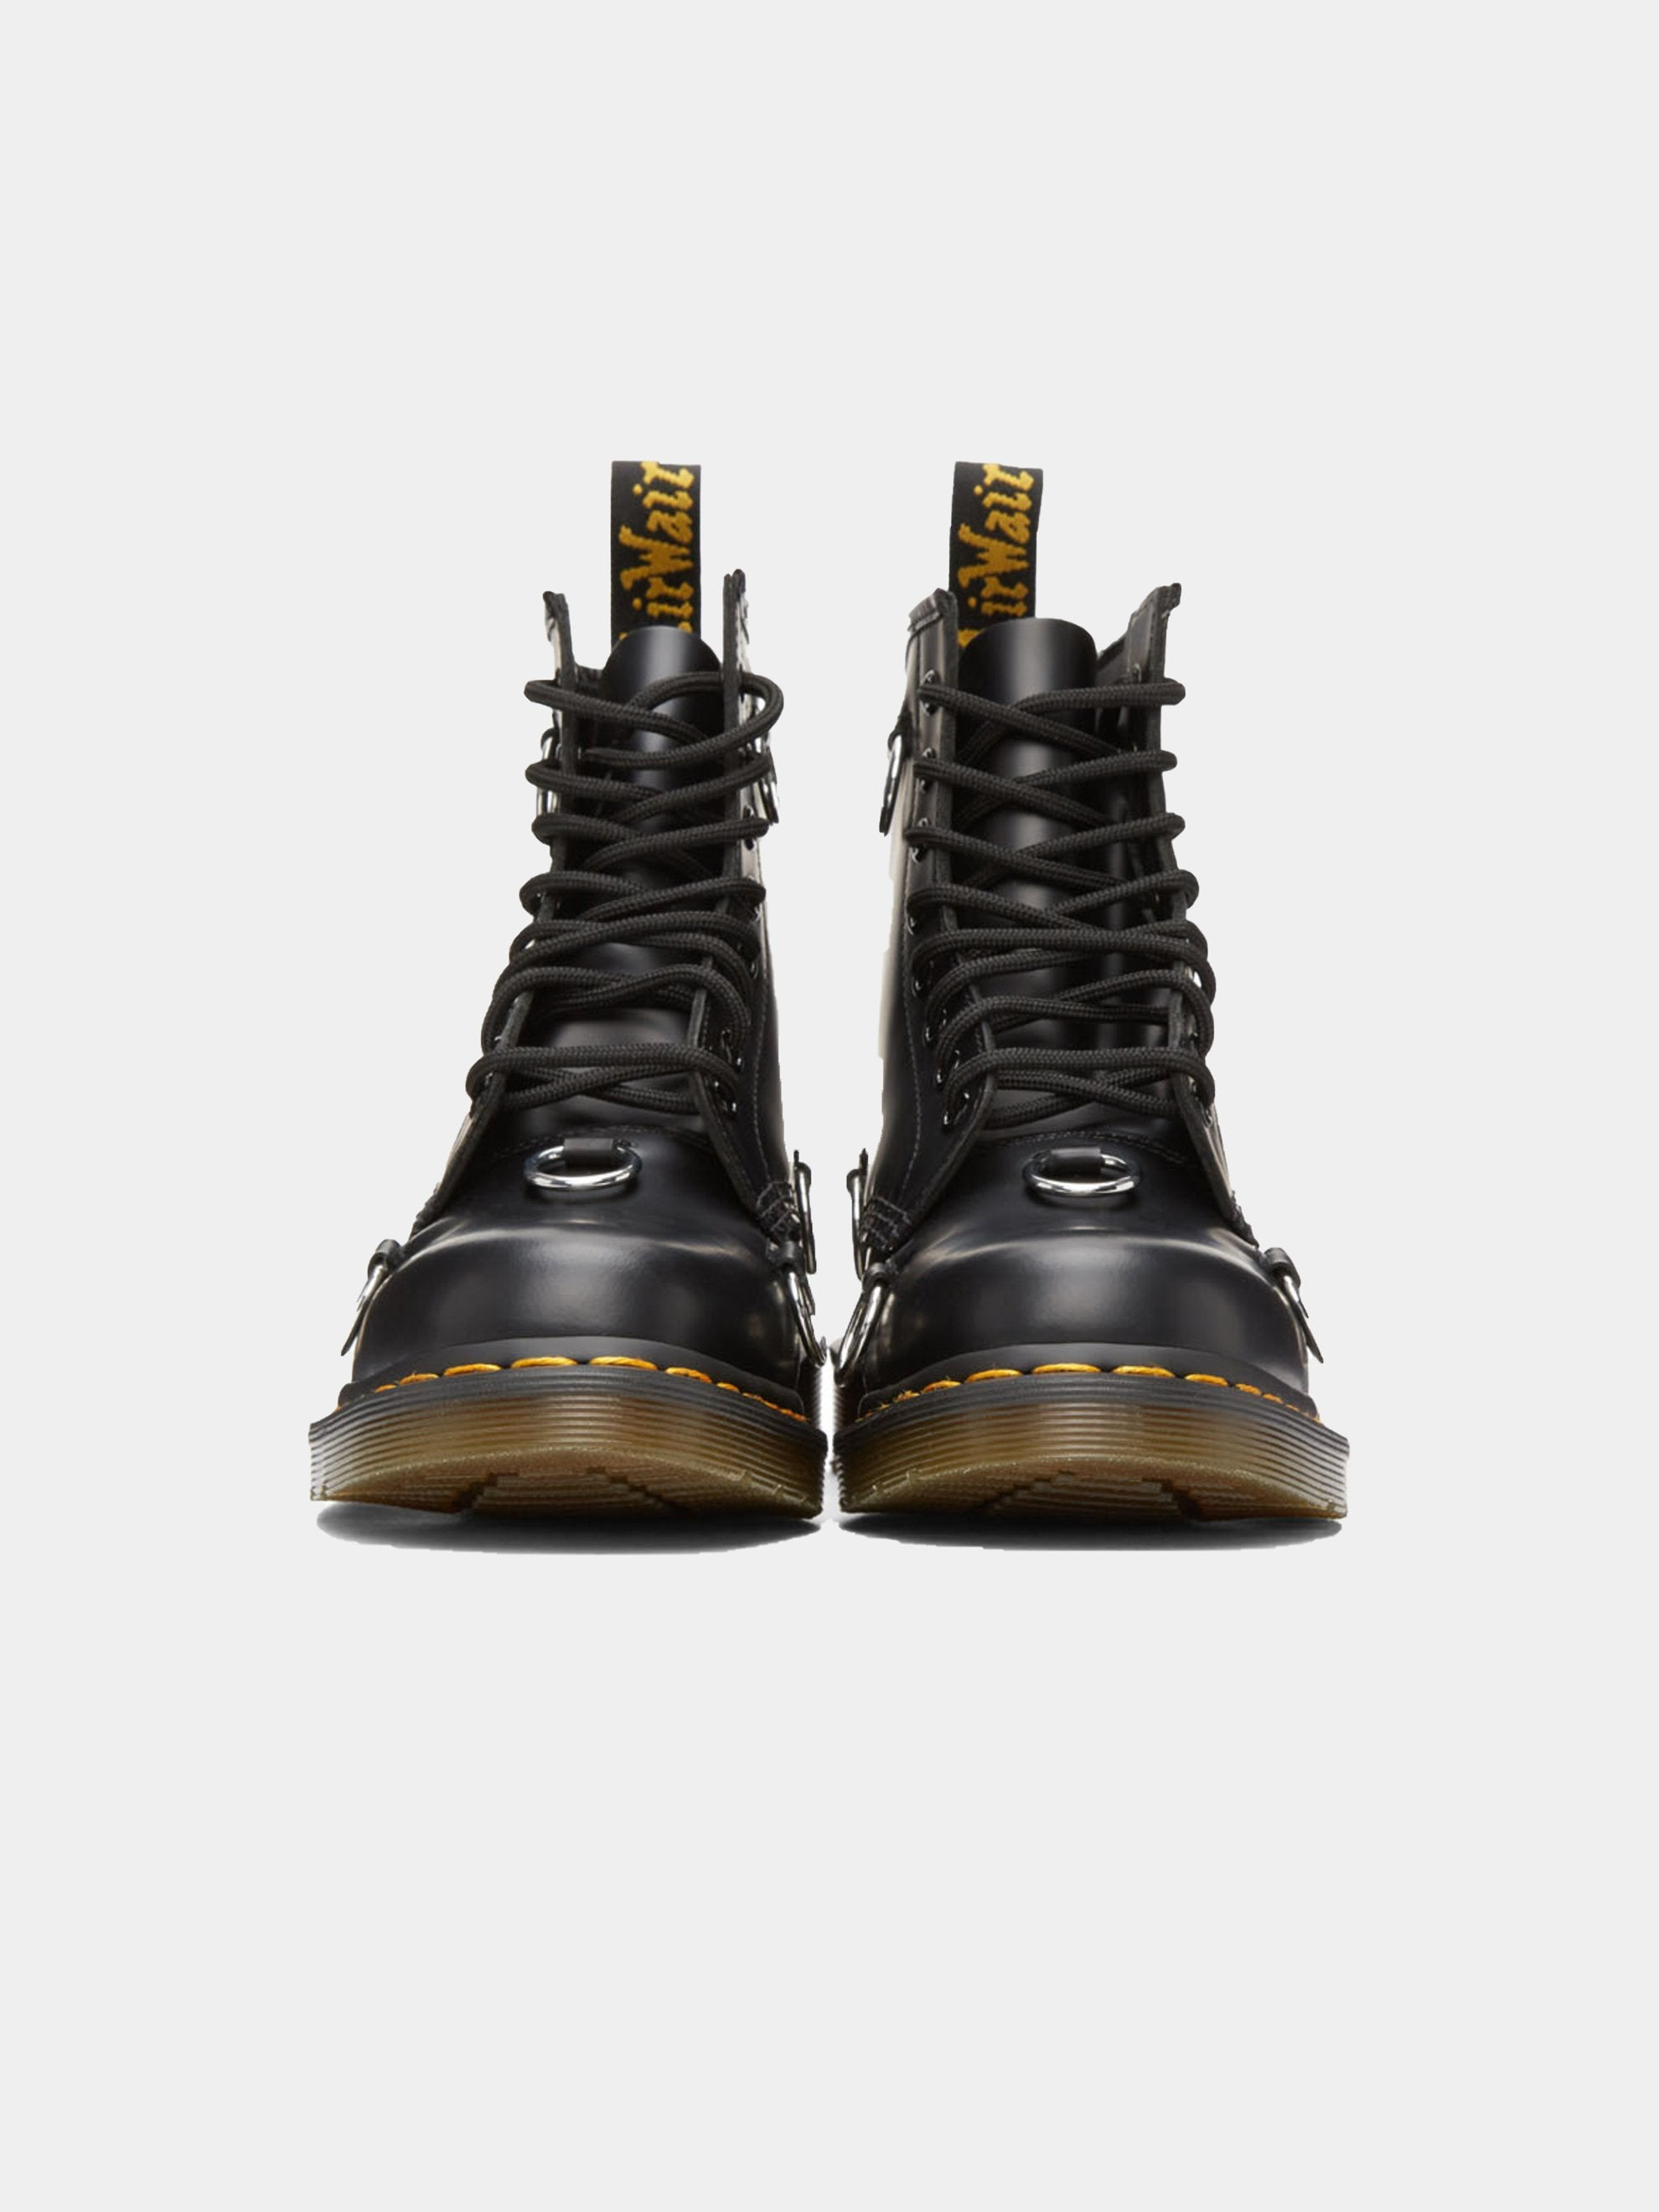 Black Dr. Martens High Boot With Rings 3